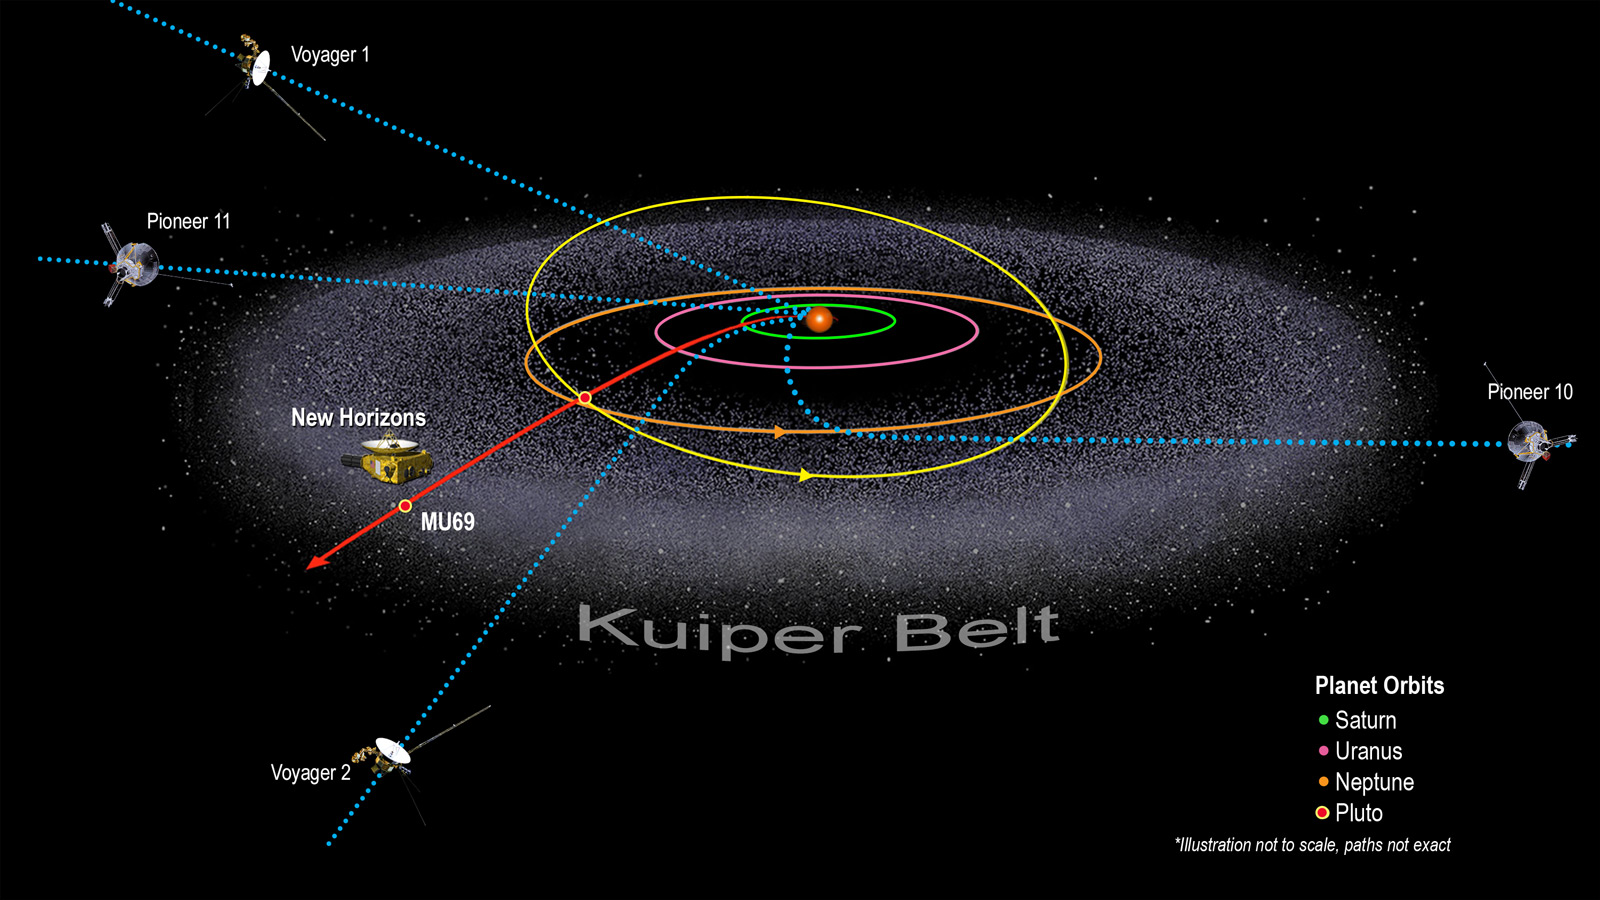 Illustration of Kuiper Belt and Spacecraft locations